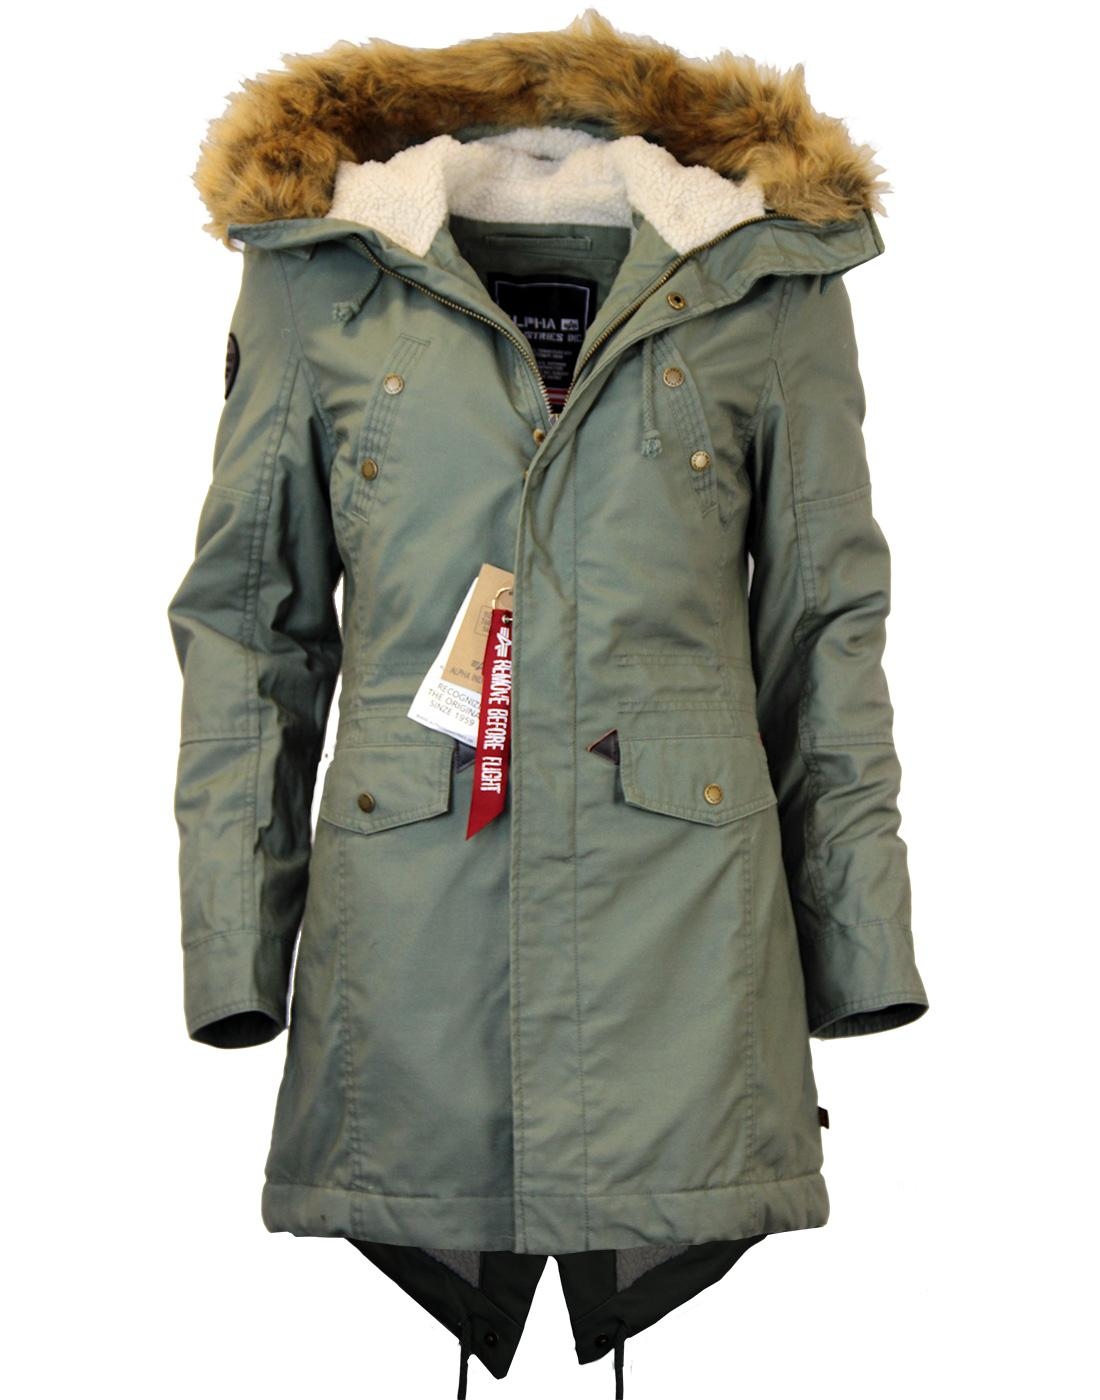 ALPHA INDUSTRIES Hooded Fishtail Womens Mod M65 Parka in Olive